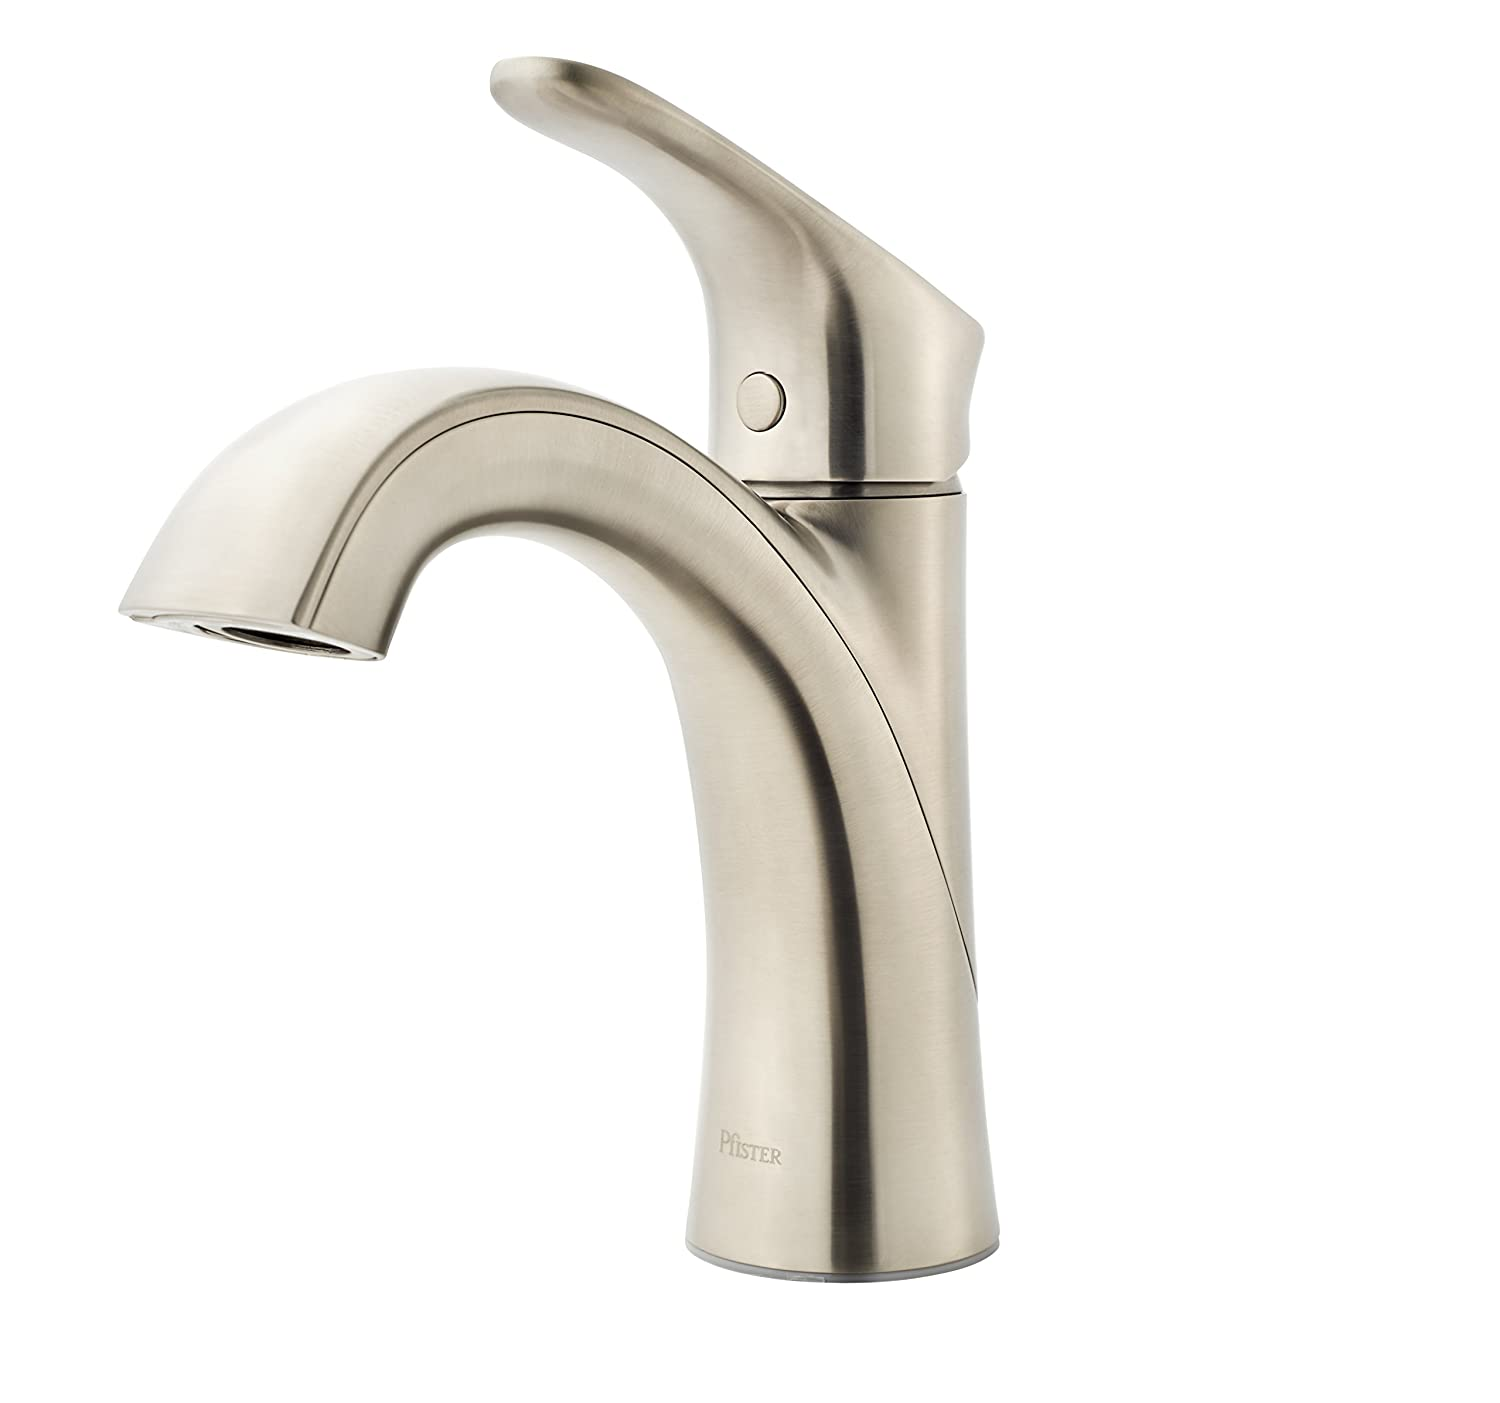 Pfister Weller LG42-WR0K Single Control Bath Faucet, in Brushed Nickel LG42WR0K